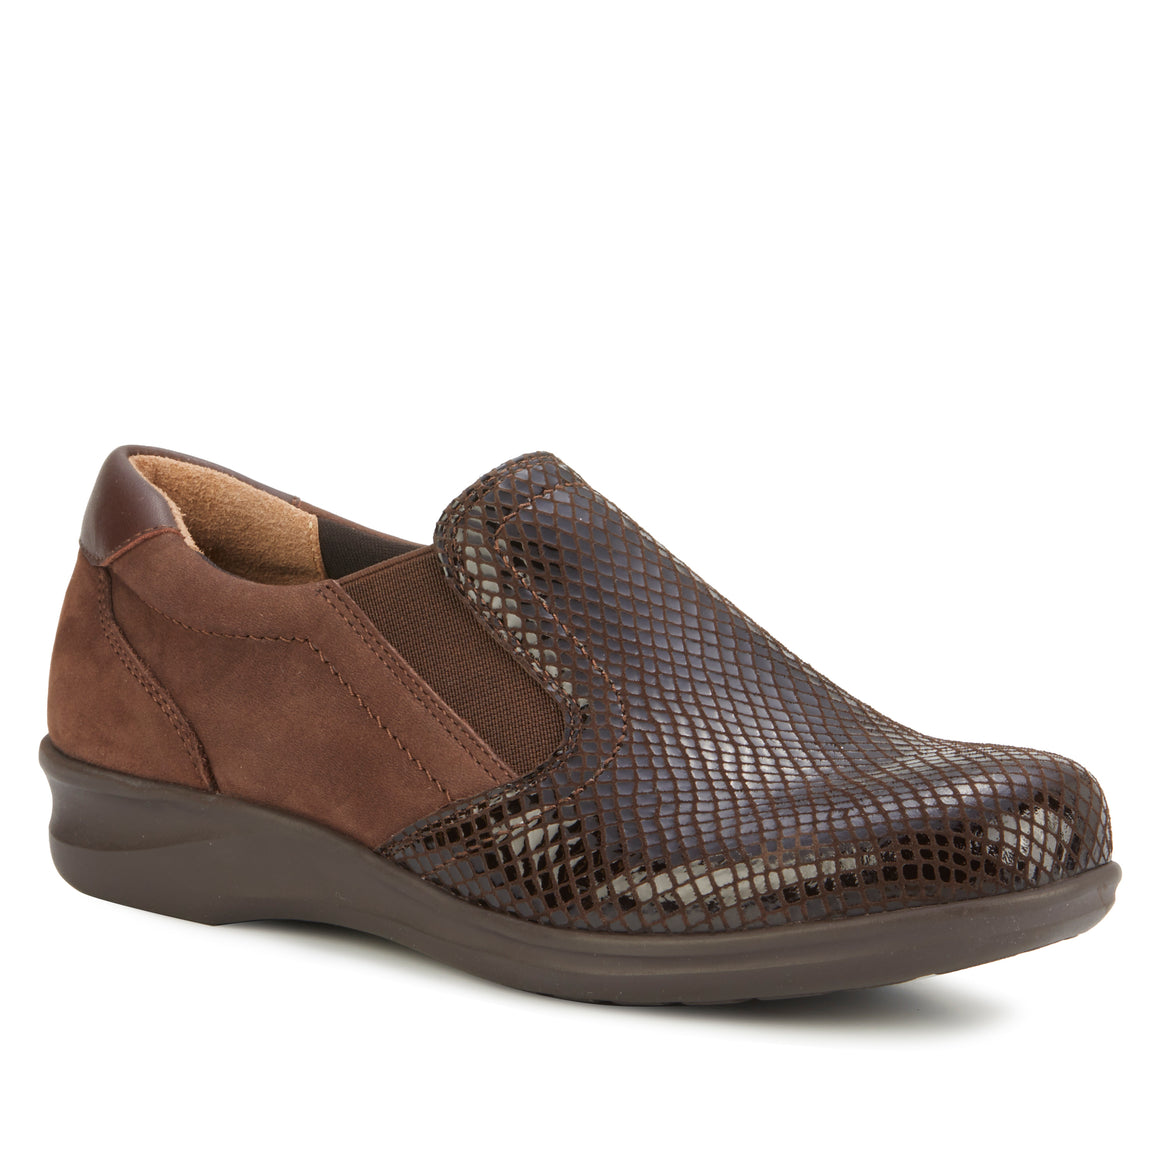 Cormick: Brown Patent Snake/Nubuck/Leather NEW